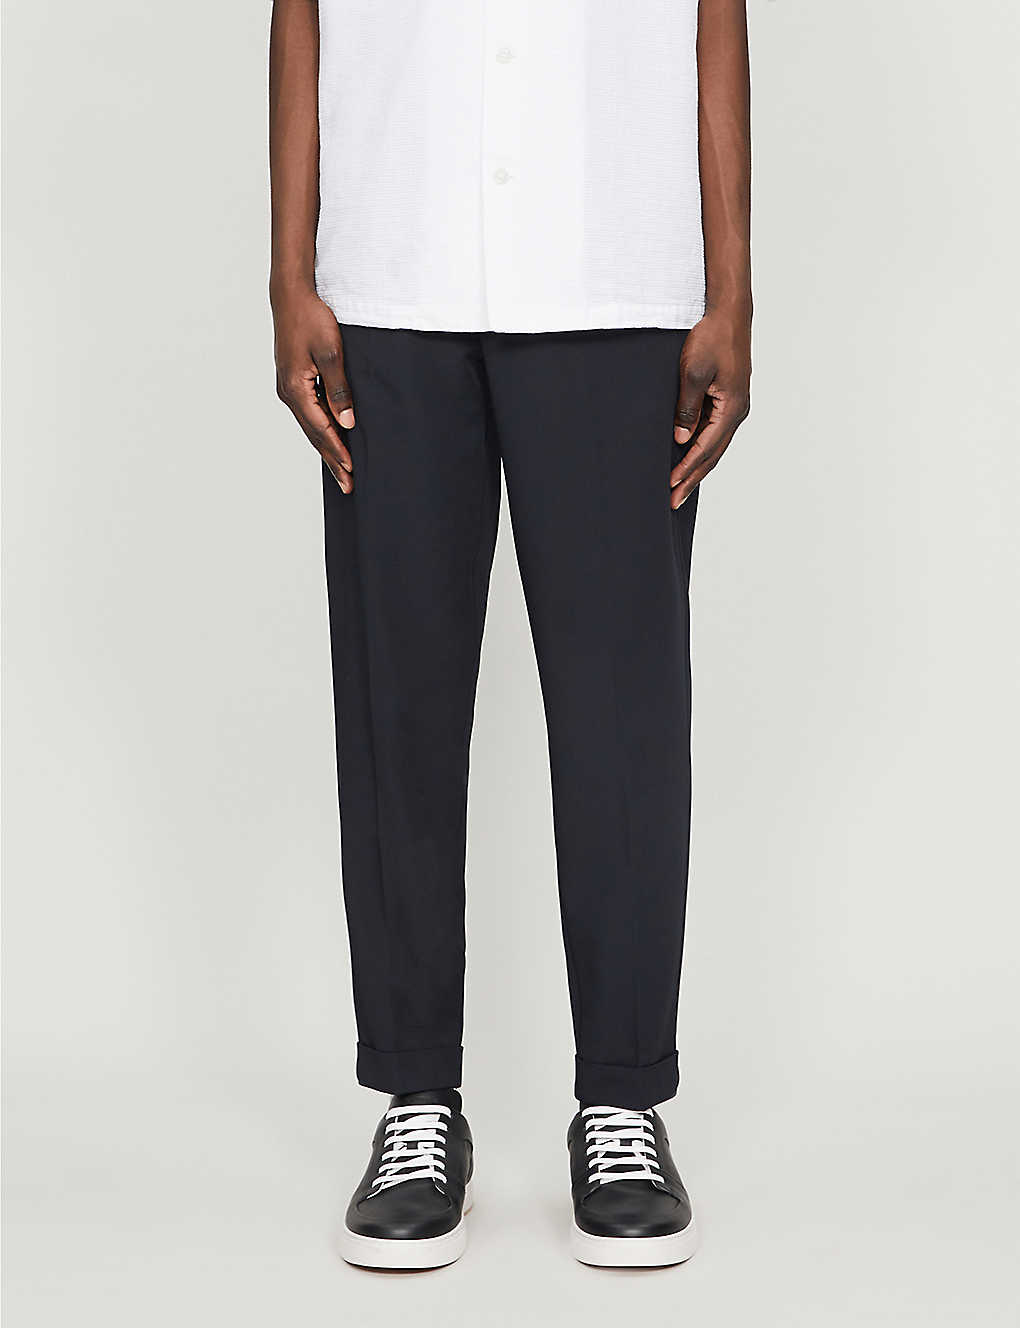 REISS: Japan drawstring slim-fit stretch-woven trousers